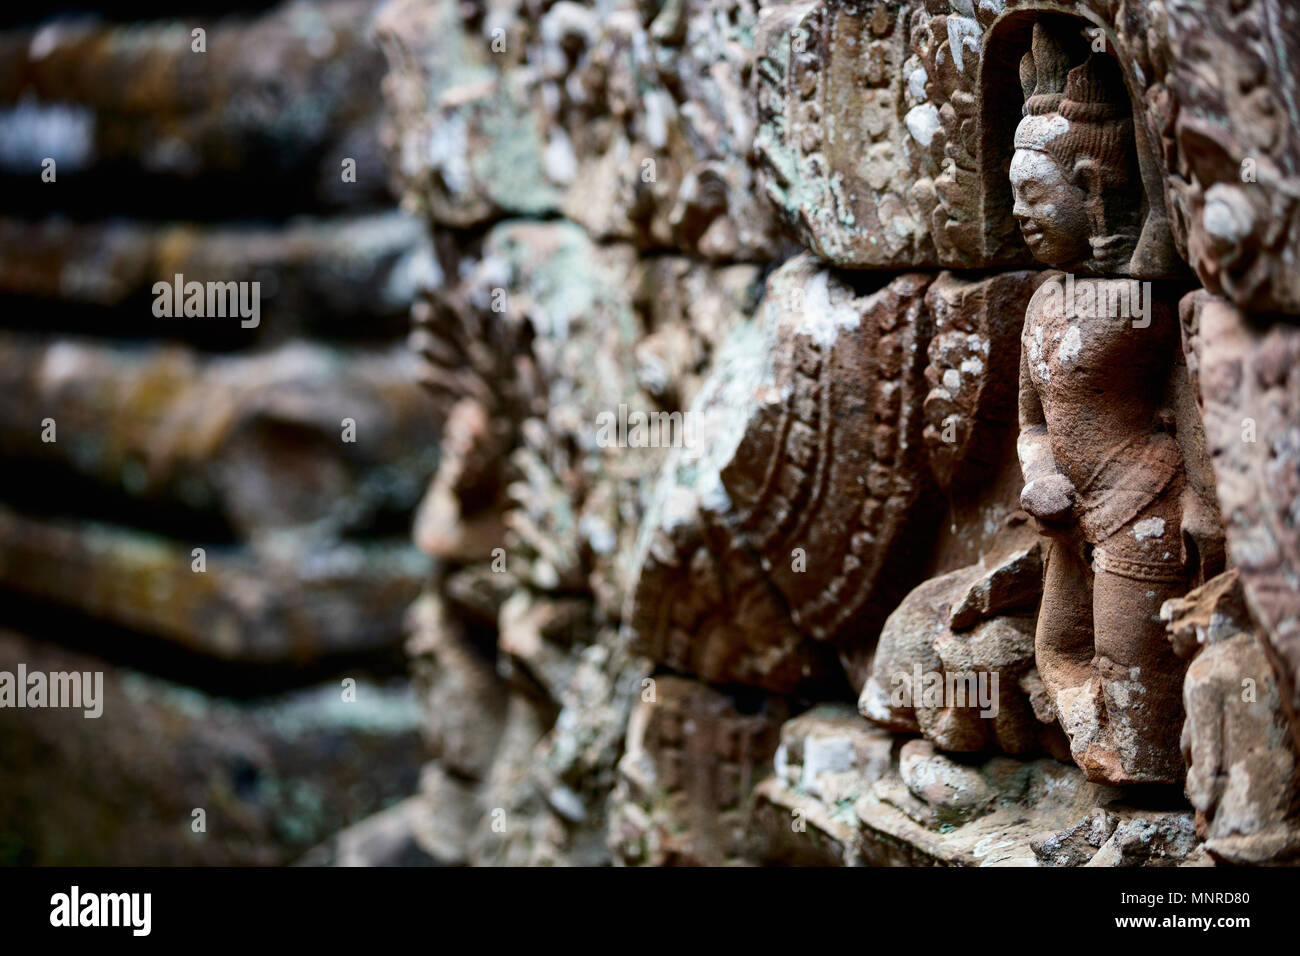 Bas reliefs in Angkor Archeological area in Cambodia - Stock Image